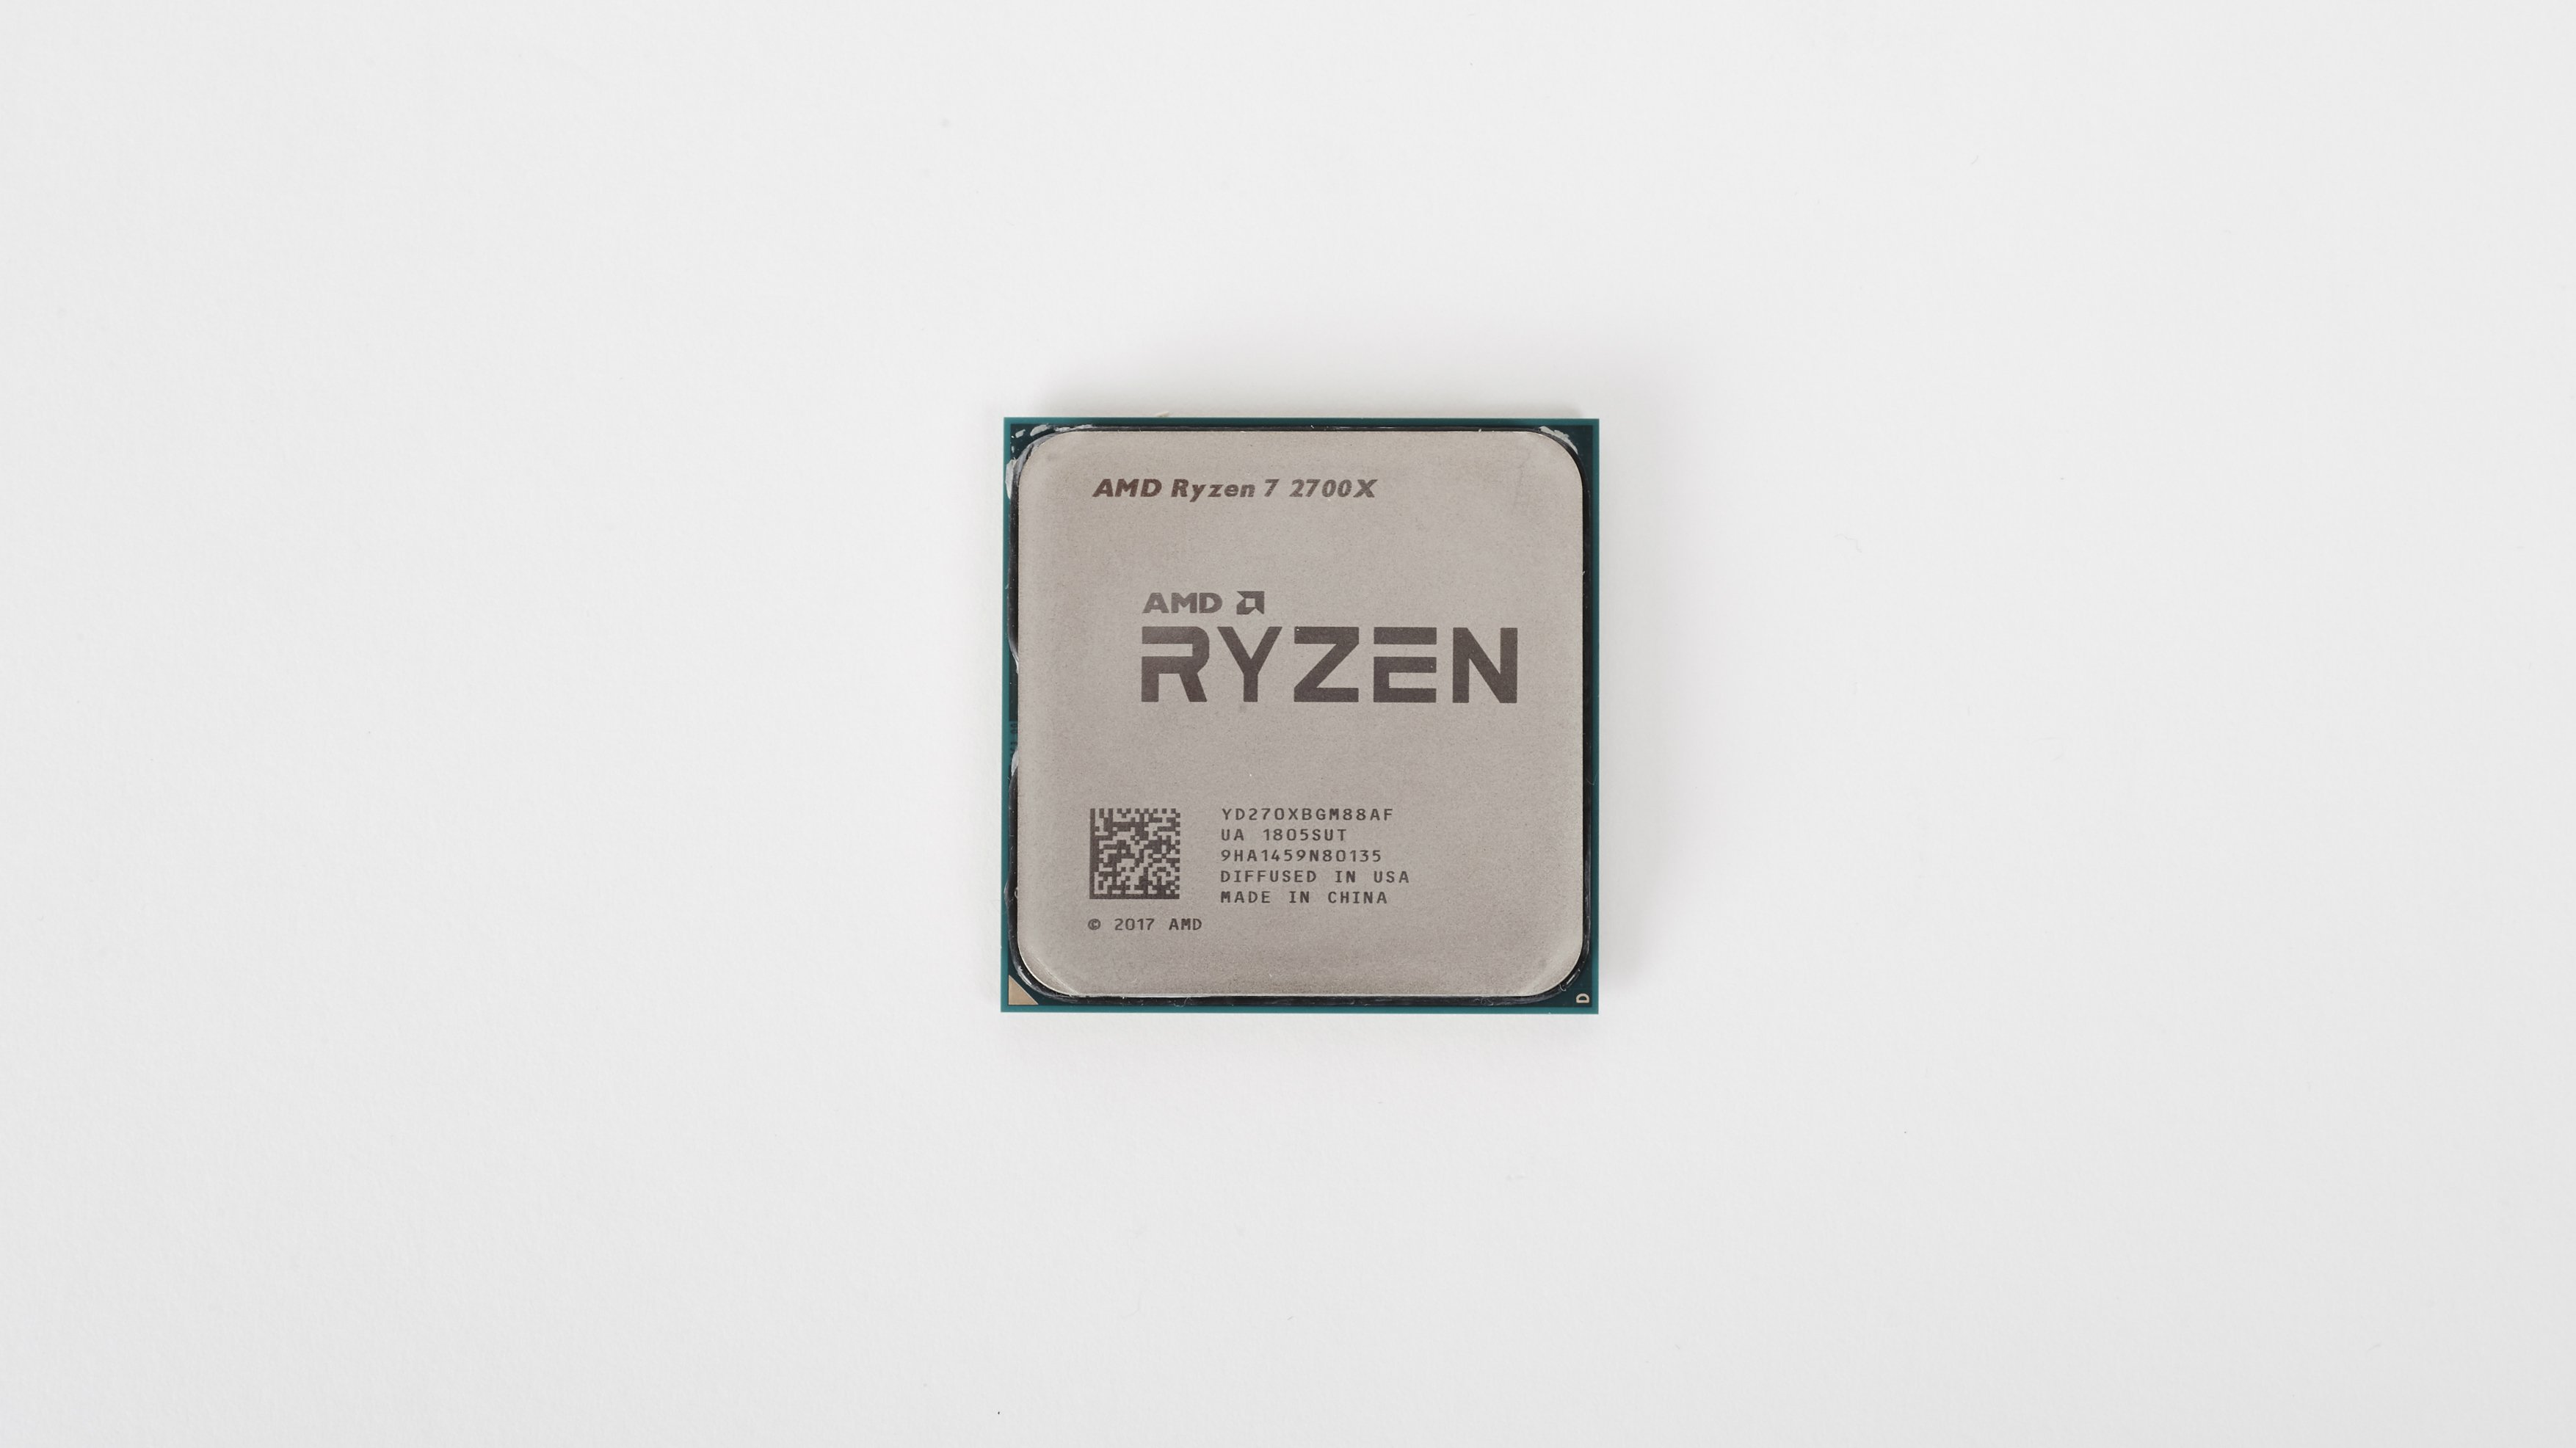 AMD Ryzen 7 2700X review: Powerful performance, affordable price